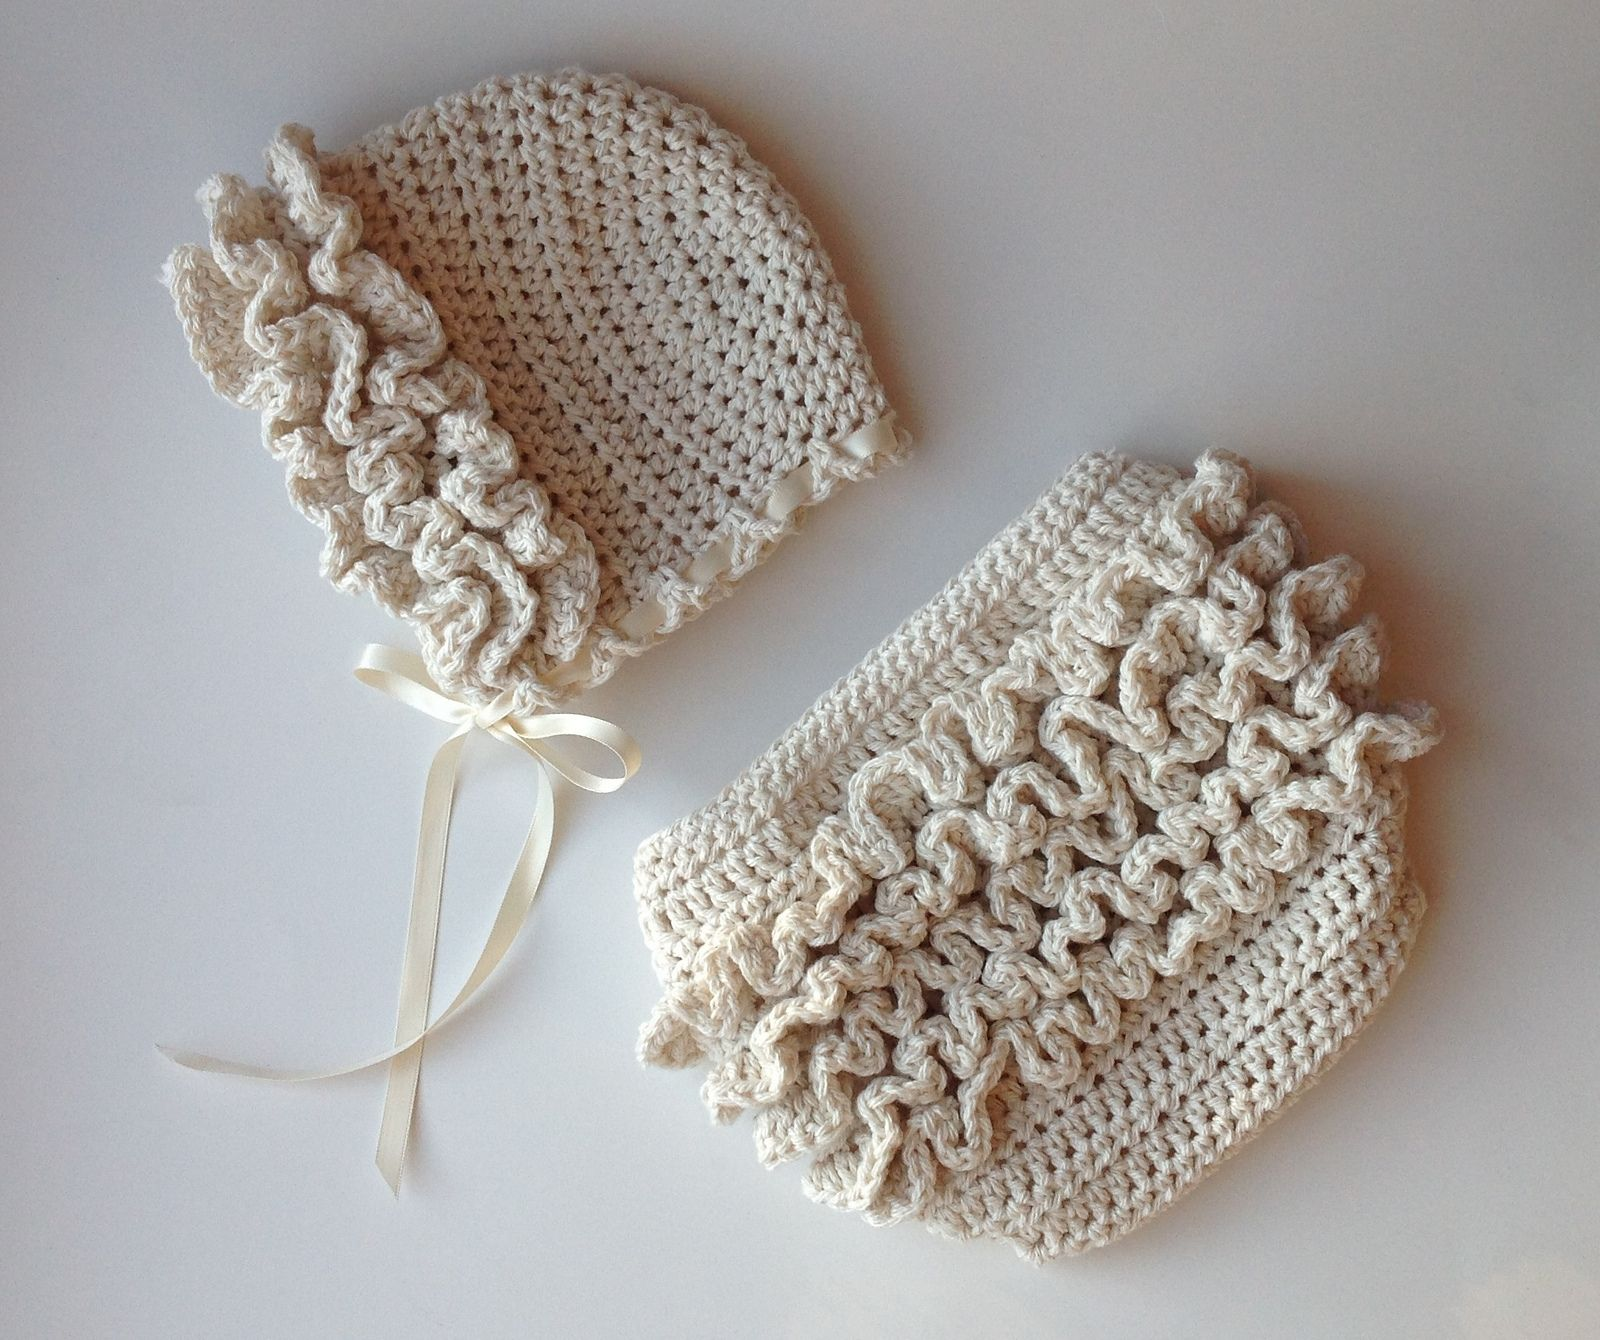 Ruffle Bum Diaper Cover pattern by Crochet by Jennifer | Pinterest